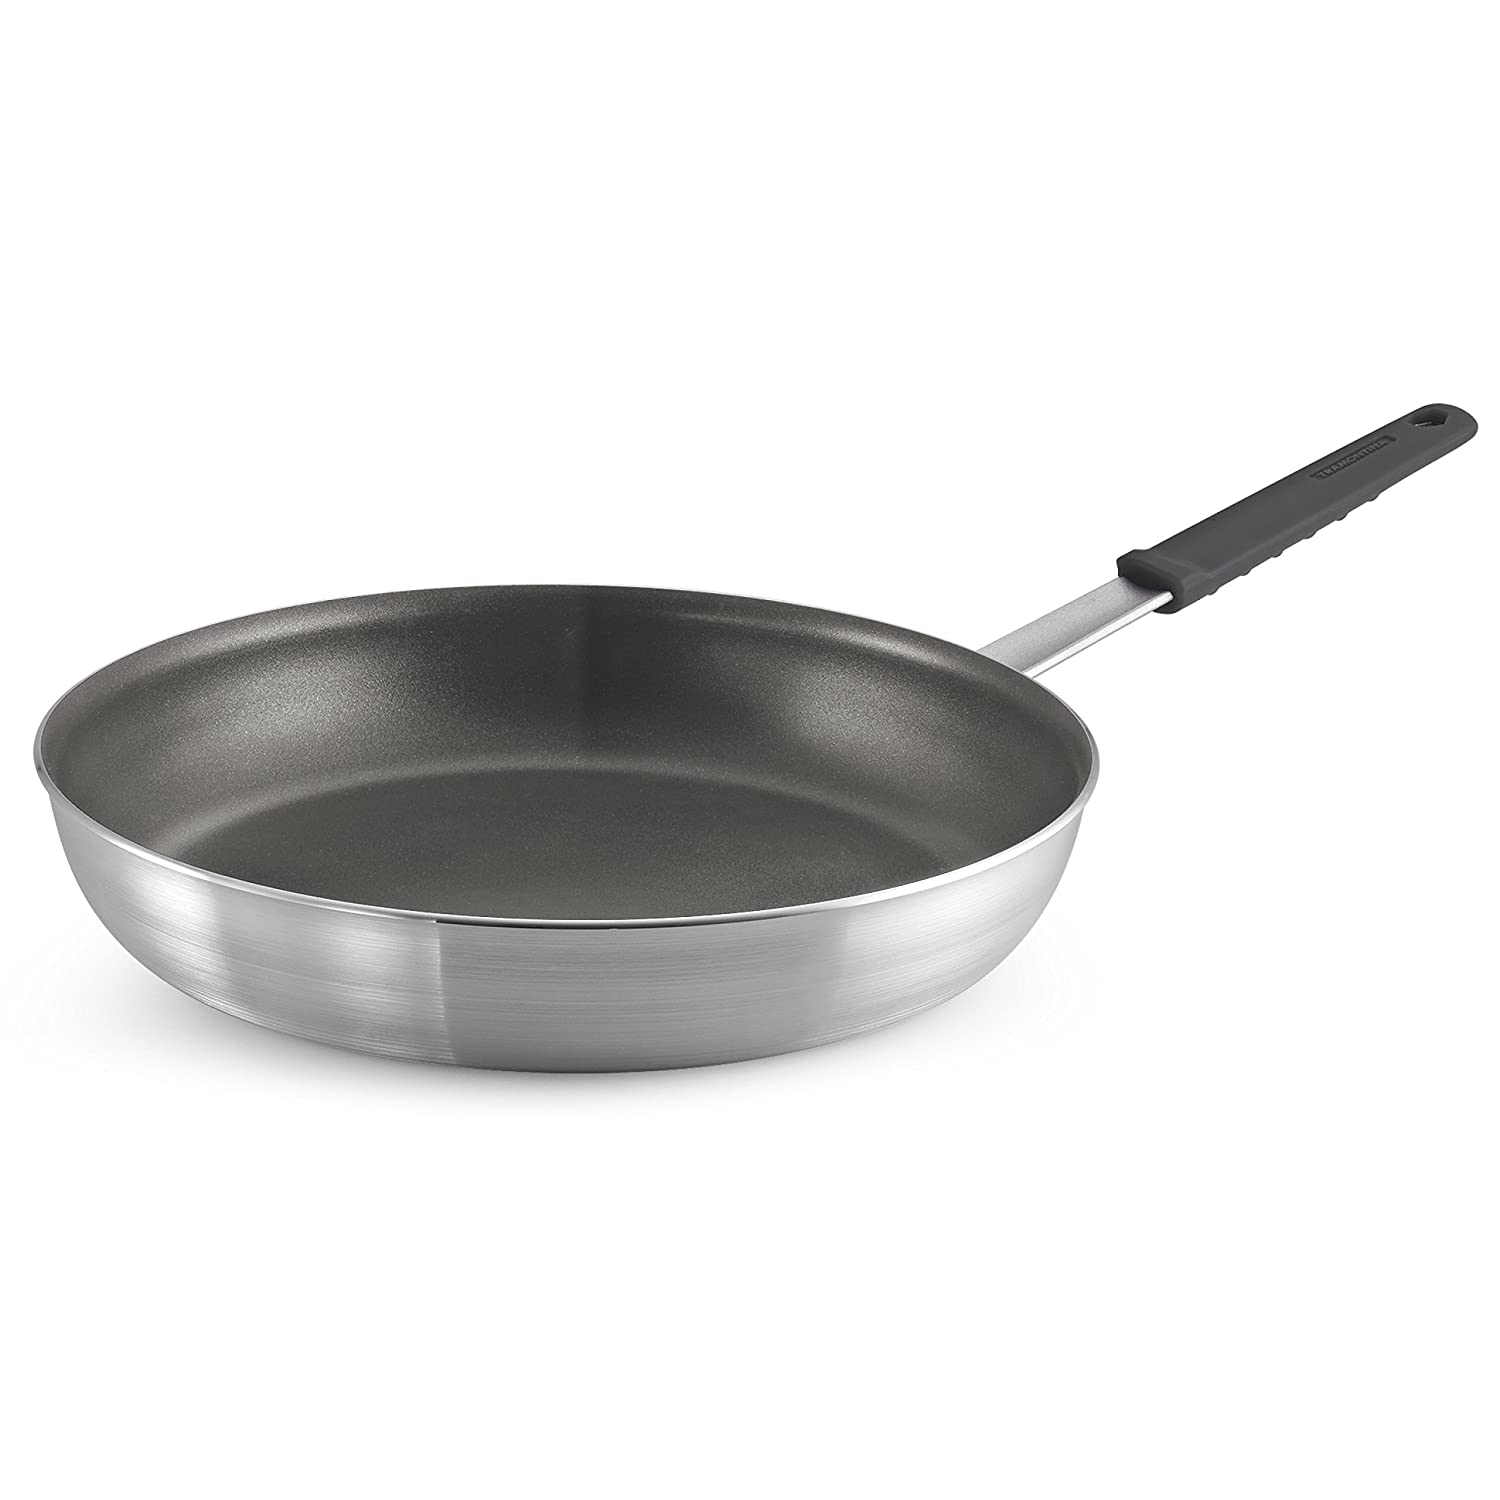 Tramontina Professional Fusion Fry Pan, 14-Inch, Satin Finish, Made in USA